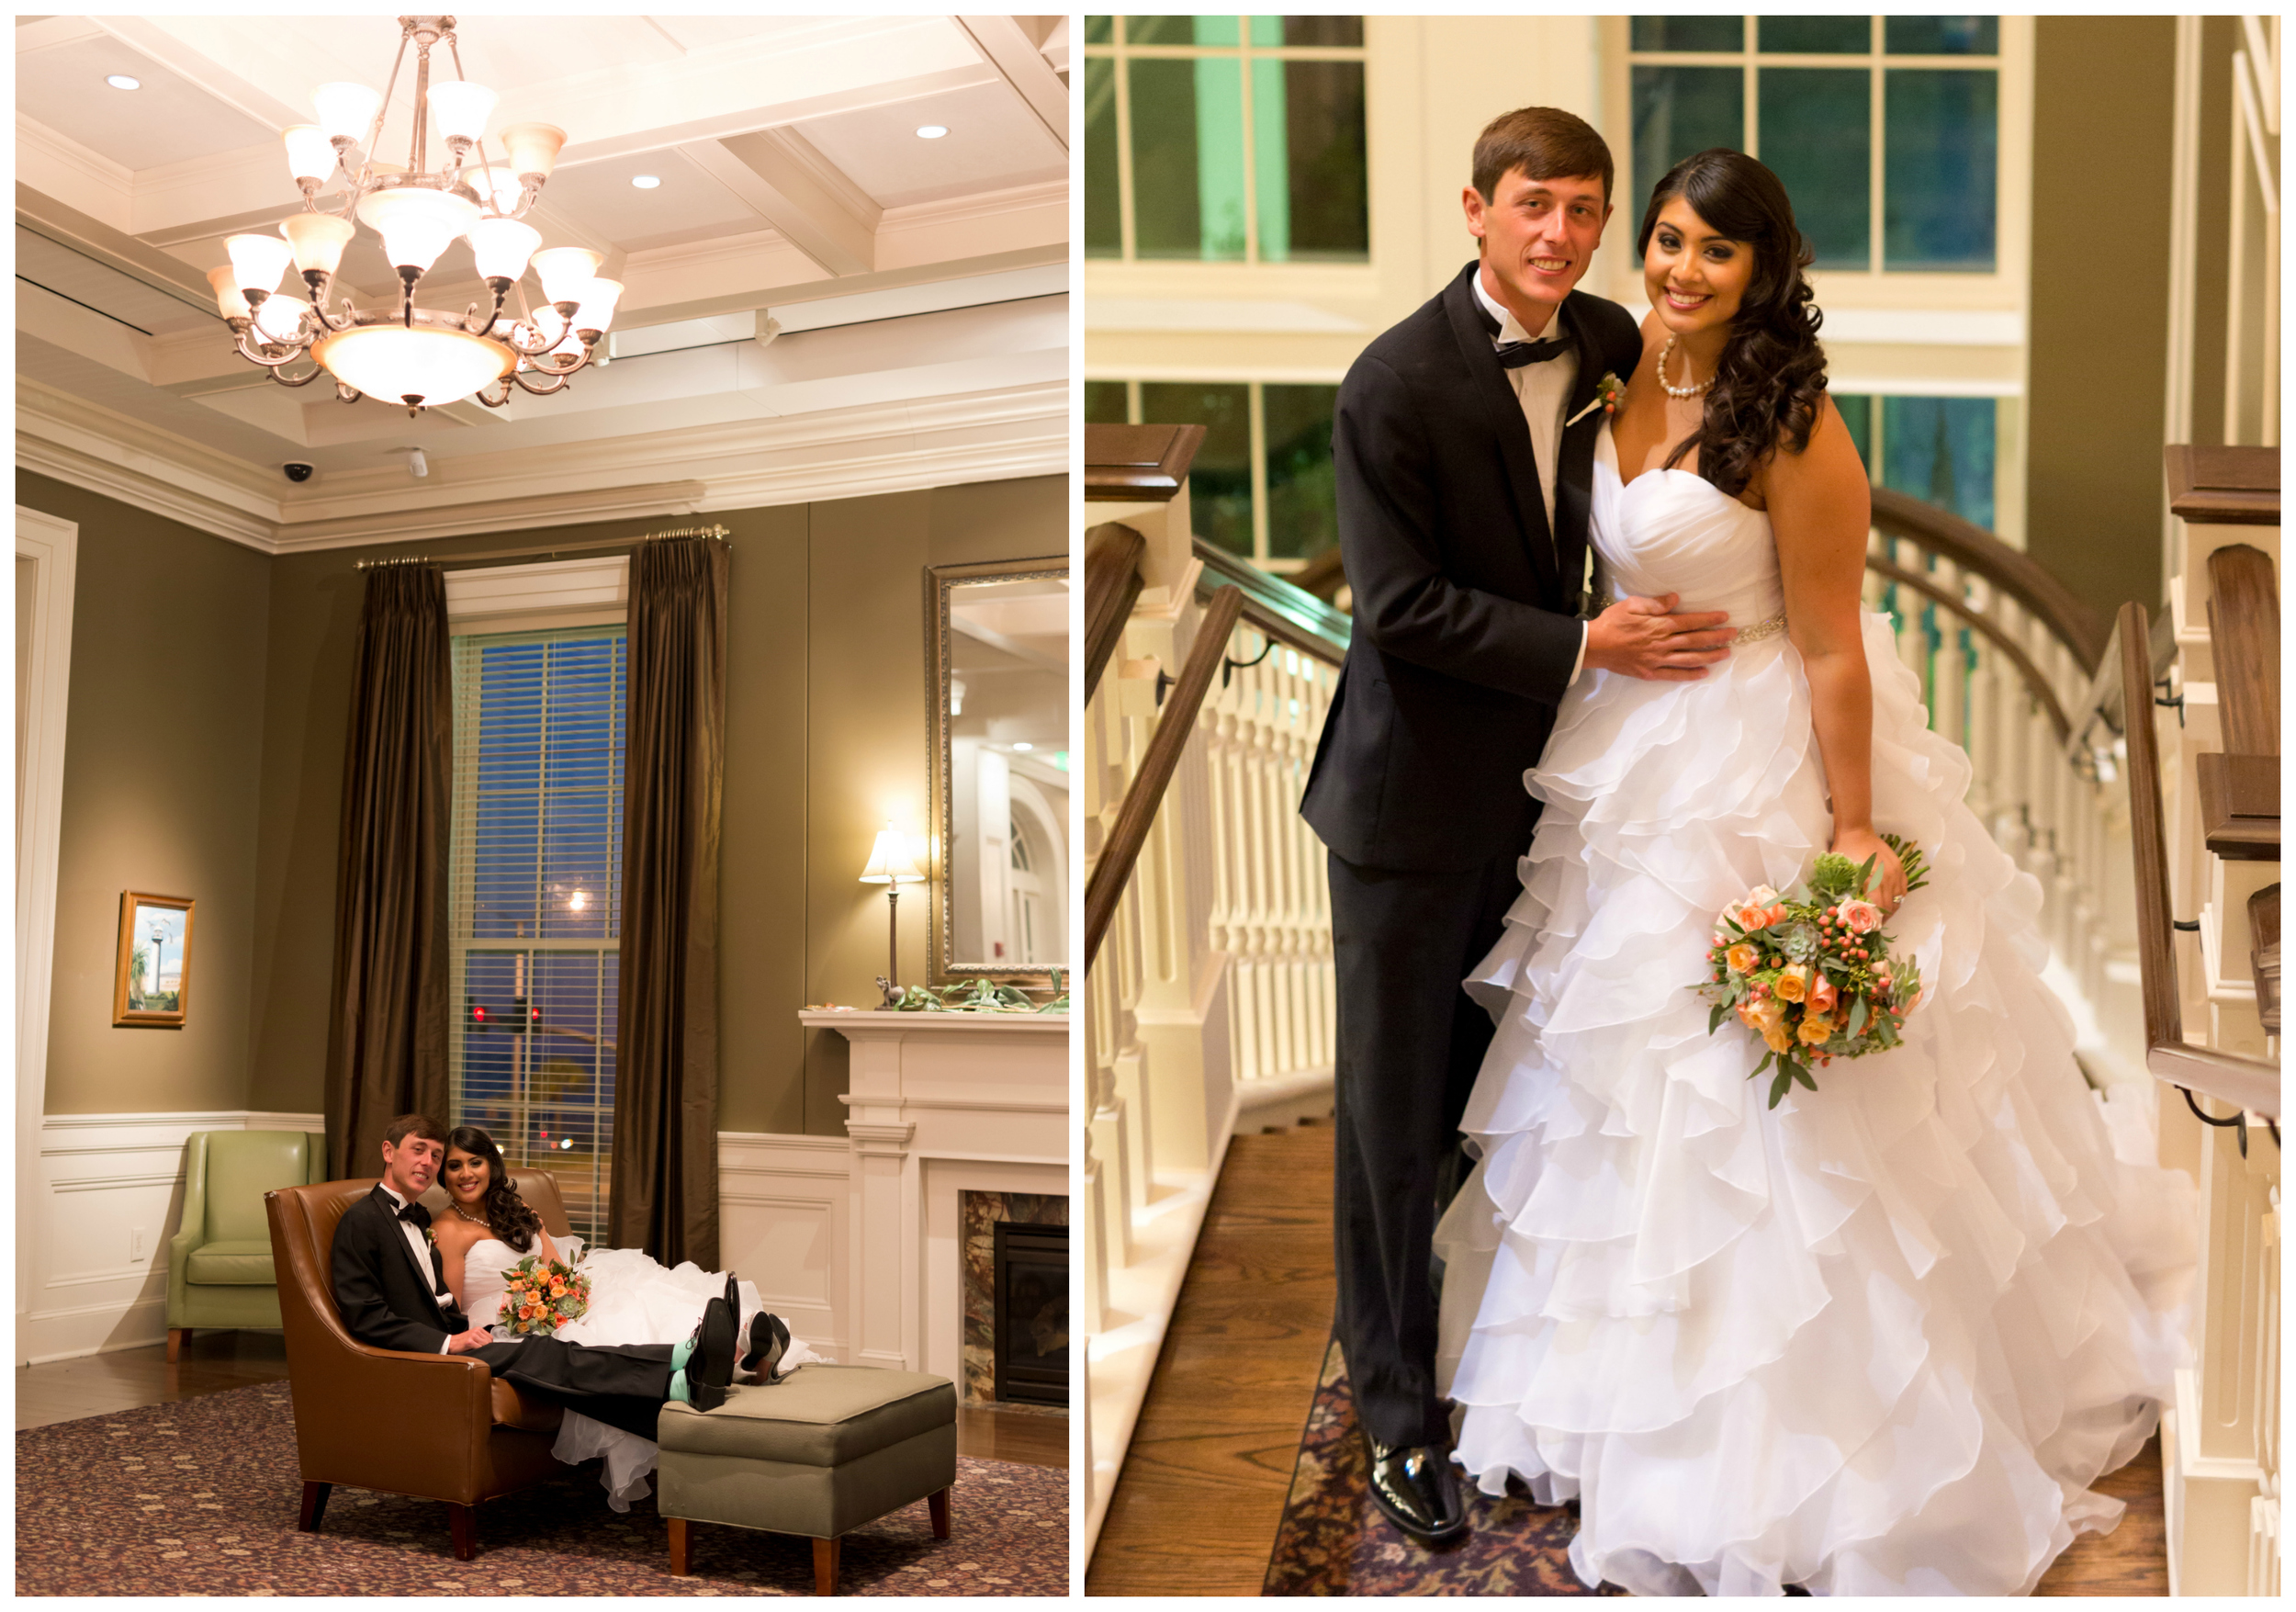 Biloxi wedding photographer (Uninvented Colors portraits at Biloxi Visitors Center)